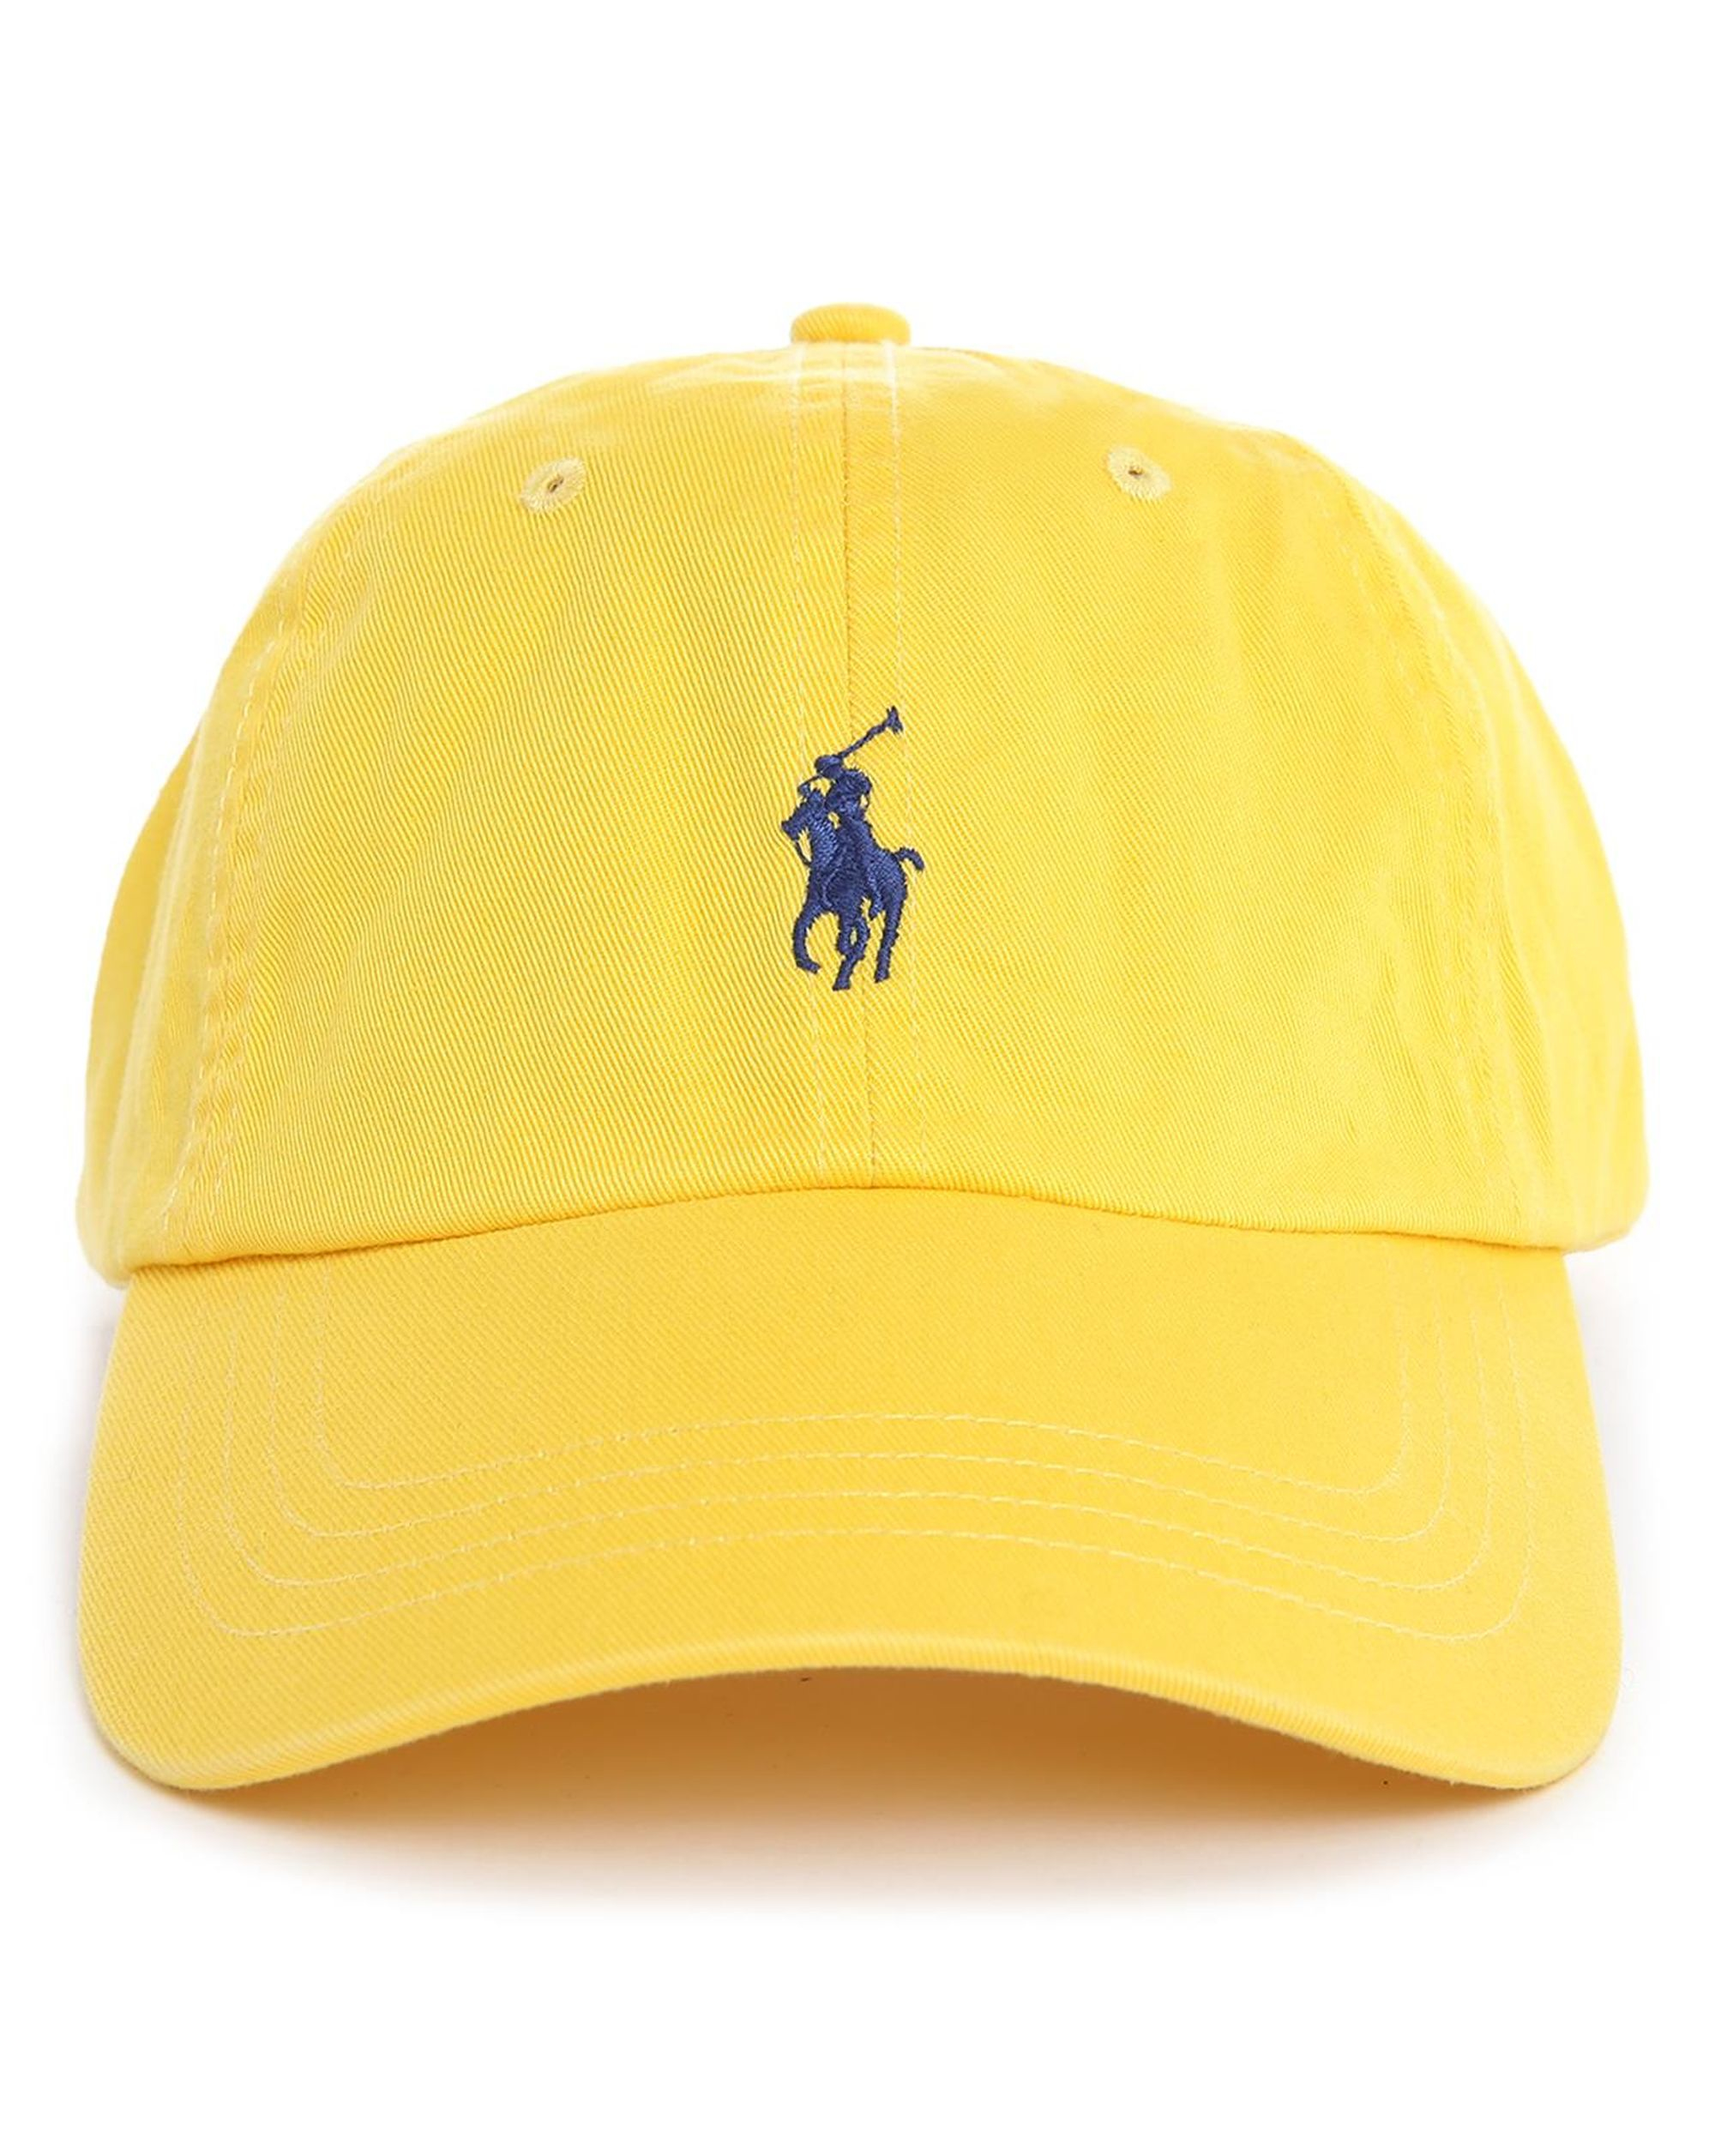 polo ralph lauren yellow classic cap in yellow for men lyst. Black Bedroom Furniture Sets. Home Design Ideas